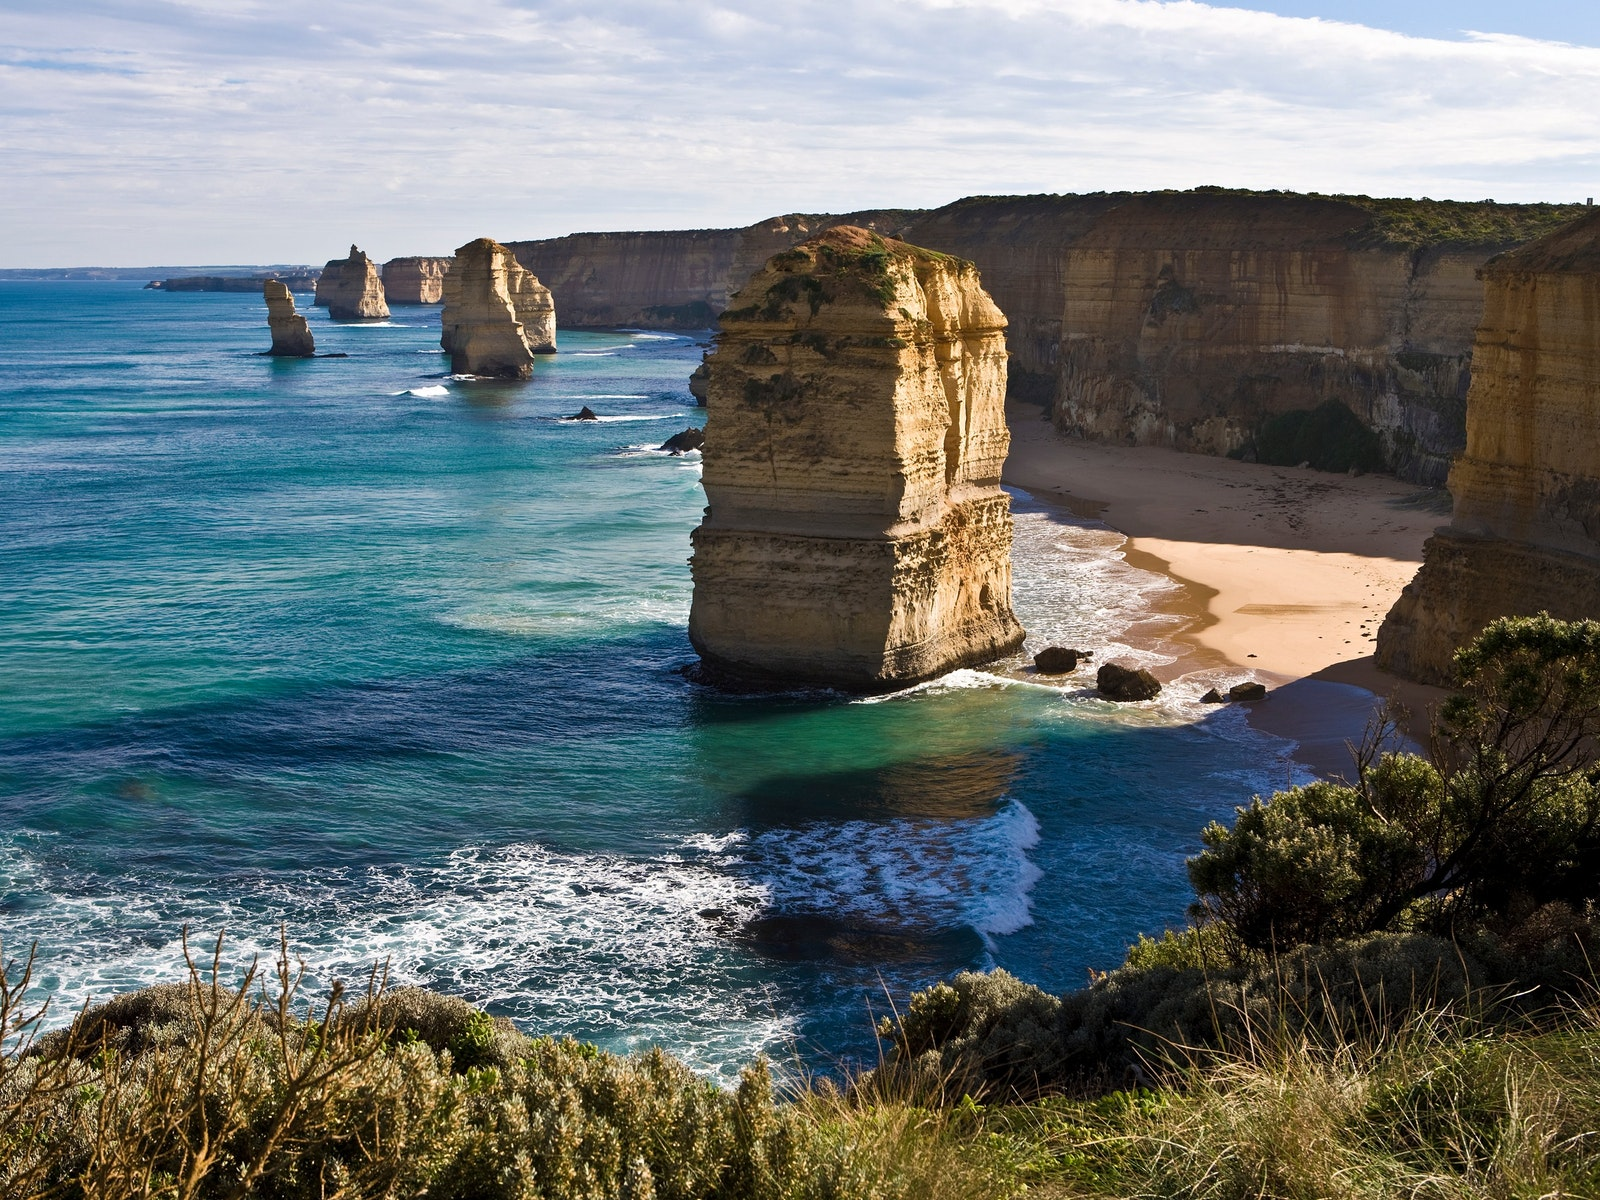 The world famous Twelve Apostles